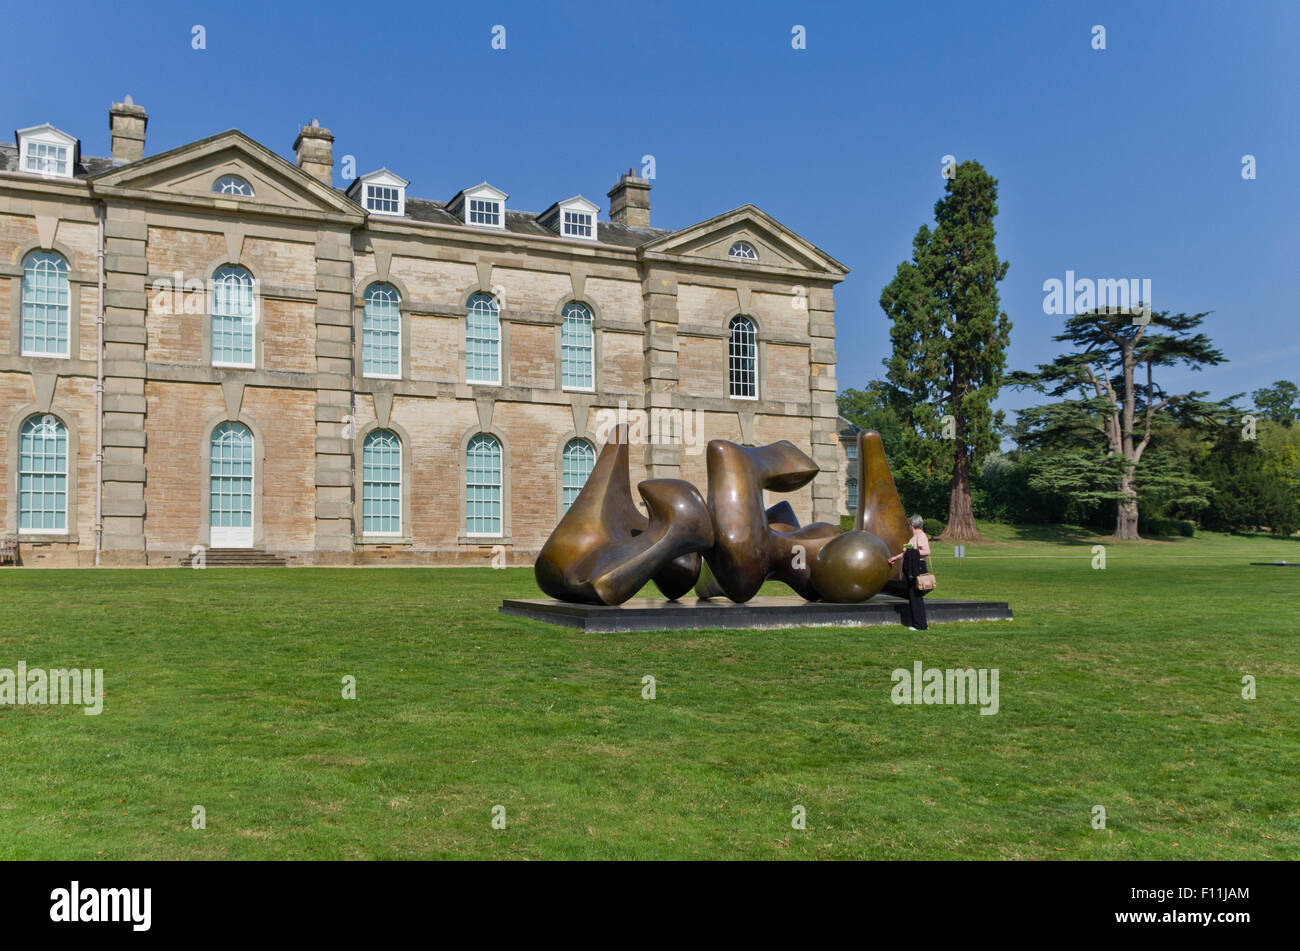 A woman examining The Three Piece Sculpture: Vertebrae by Henry Moore in the grounds of Compton Verney House - Stock Image